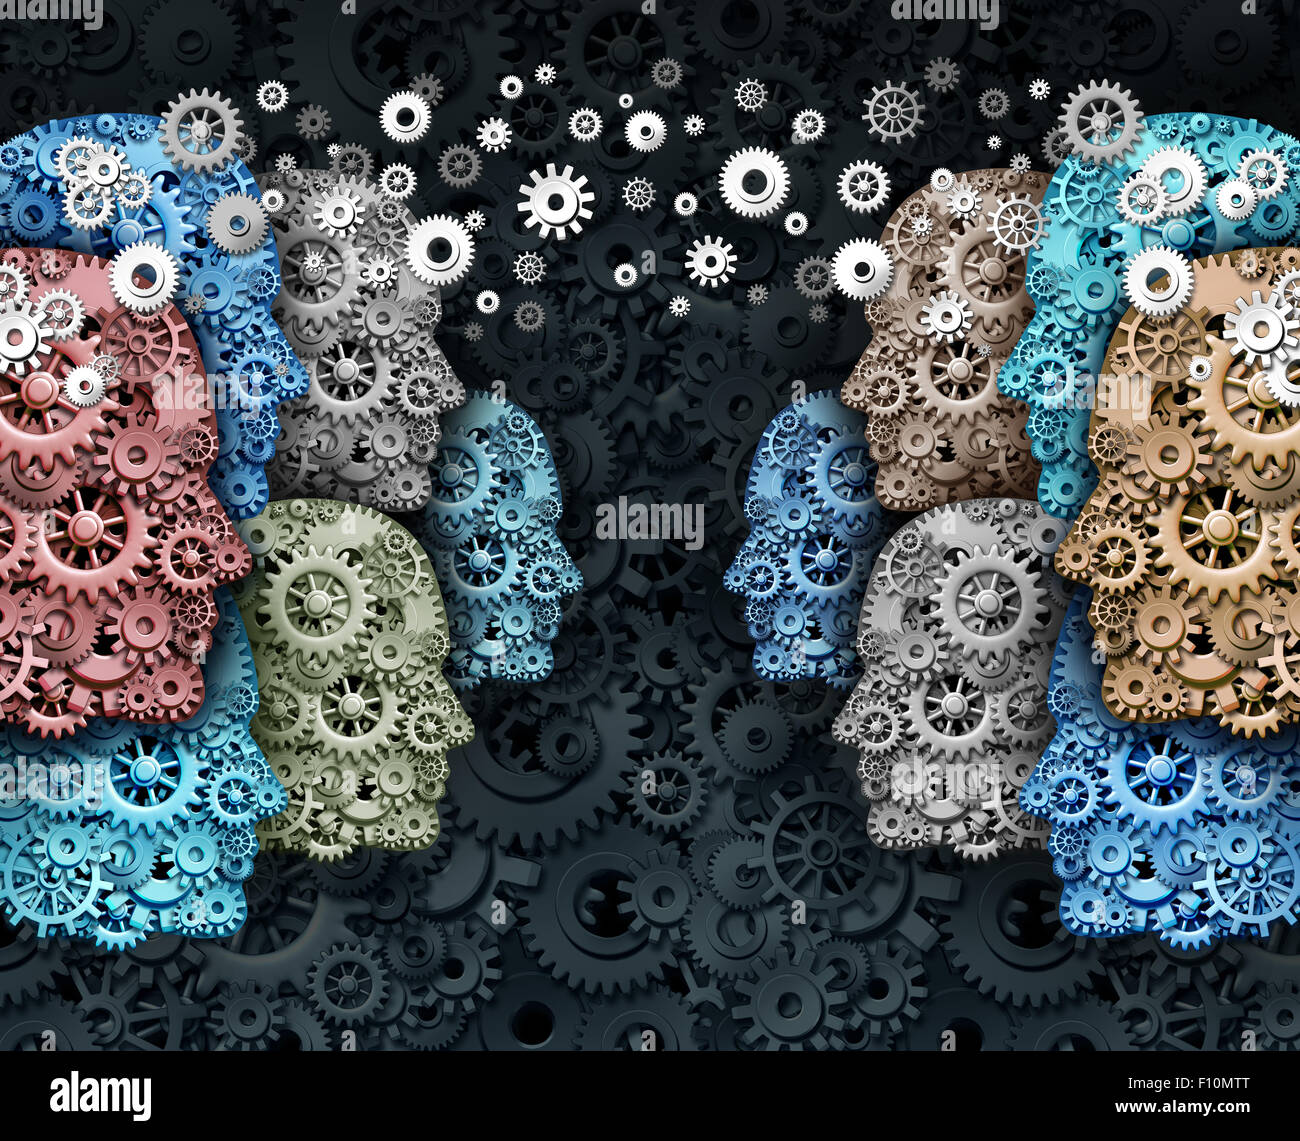 Social business and crowd media internet communication marketing web concept as a group of people made of gears - Stock Image